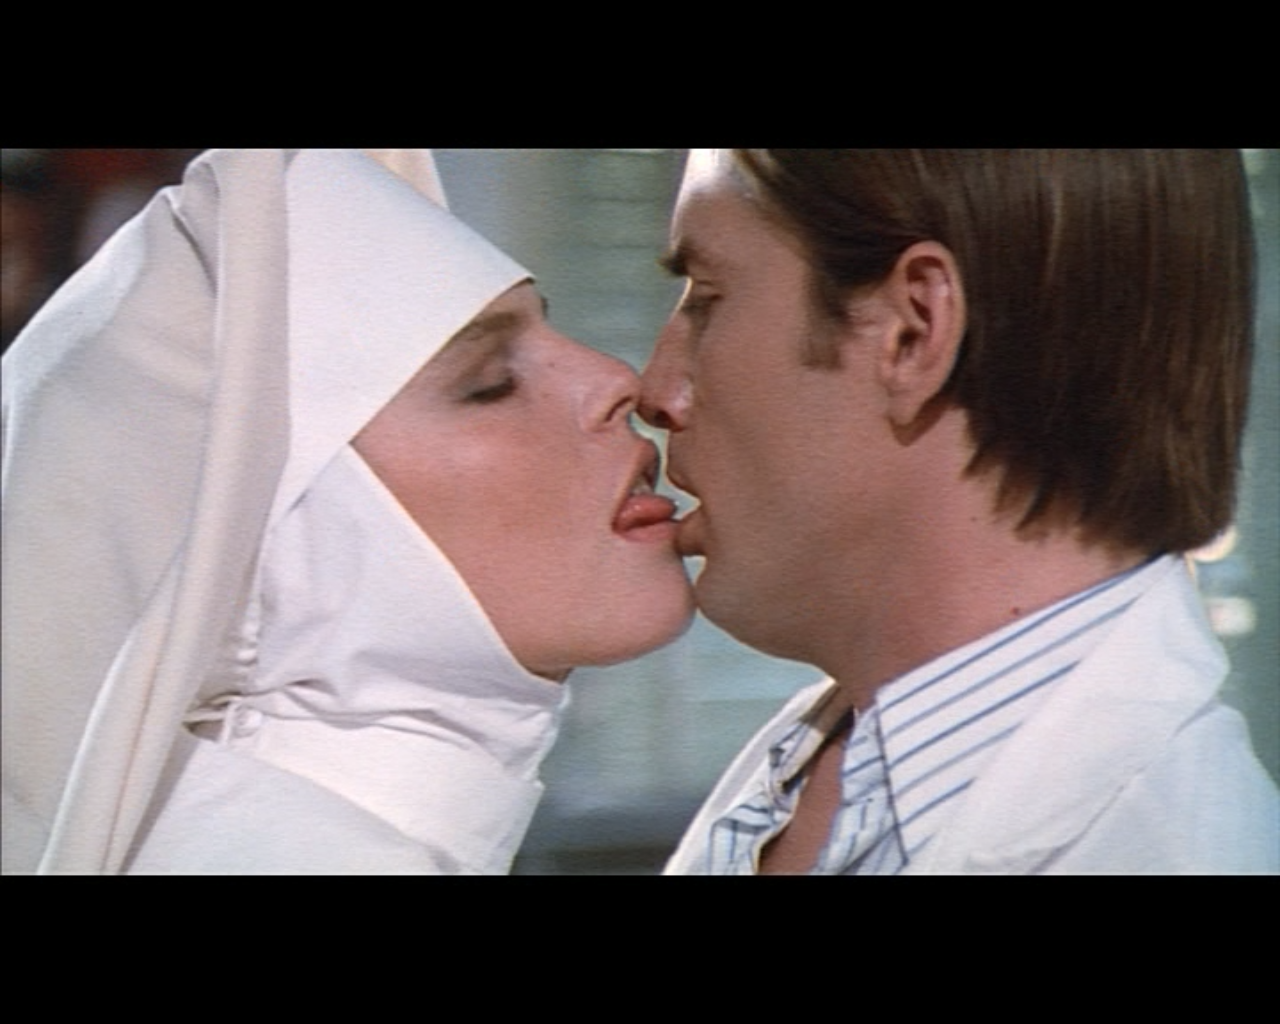 Anita ekberg paola morra in killer nun 1978 - 3 2